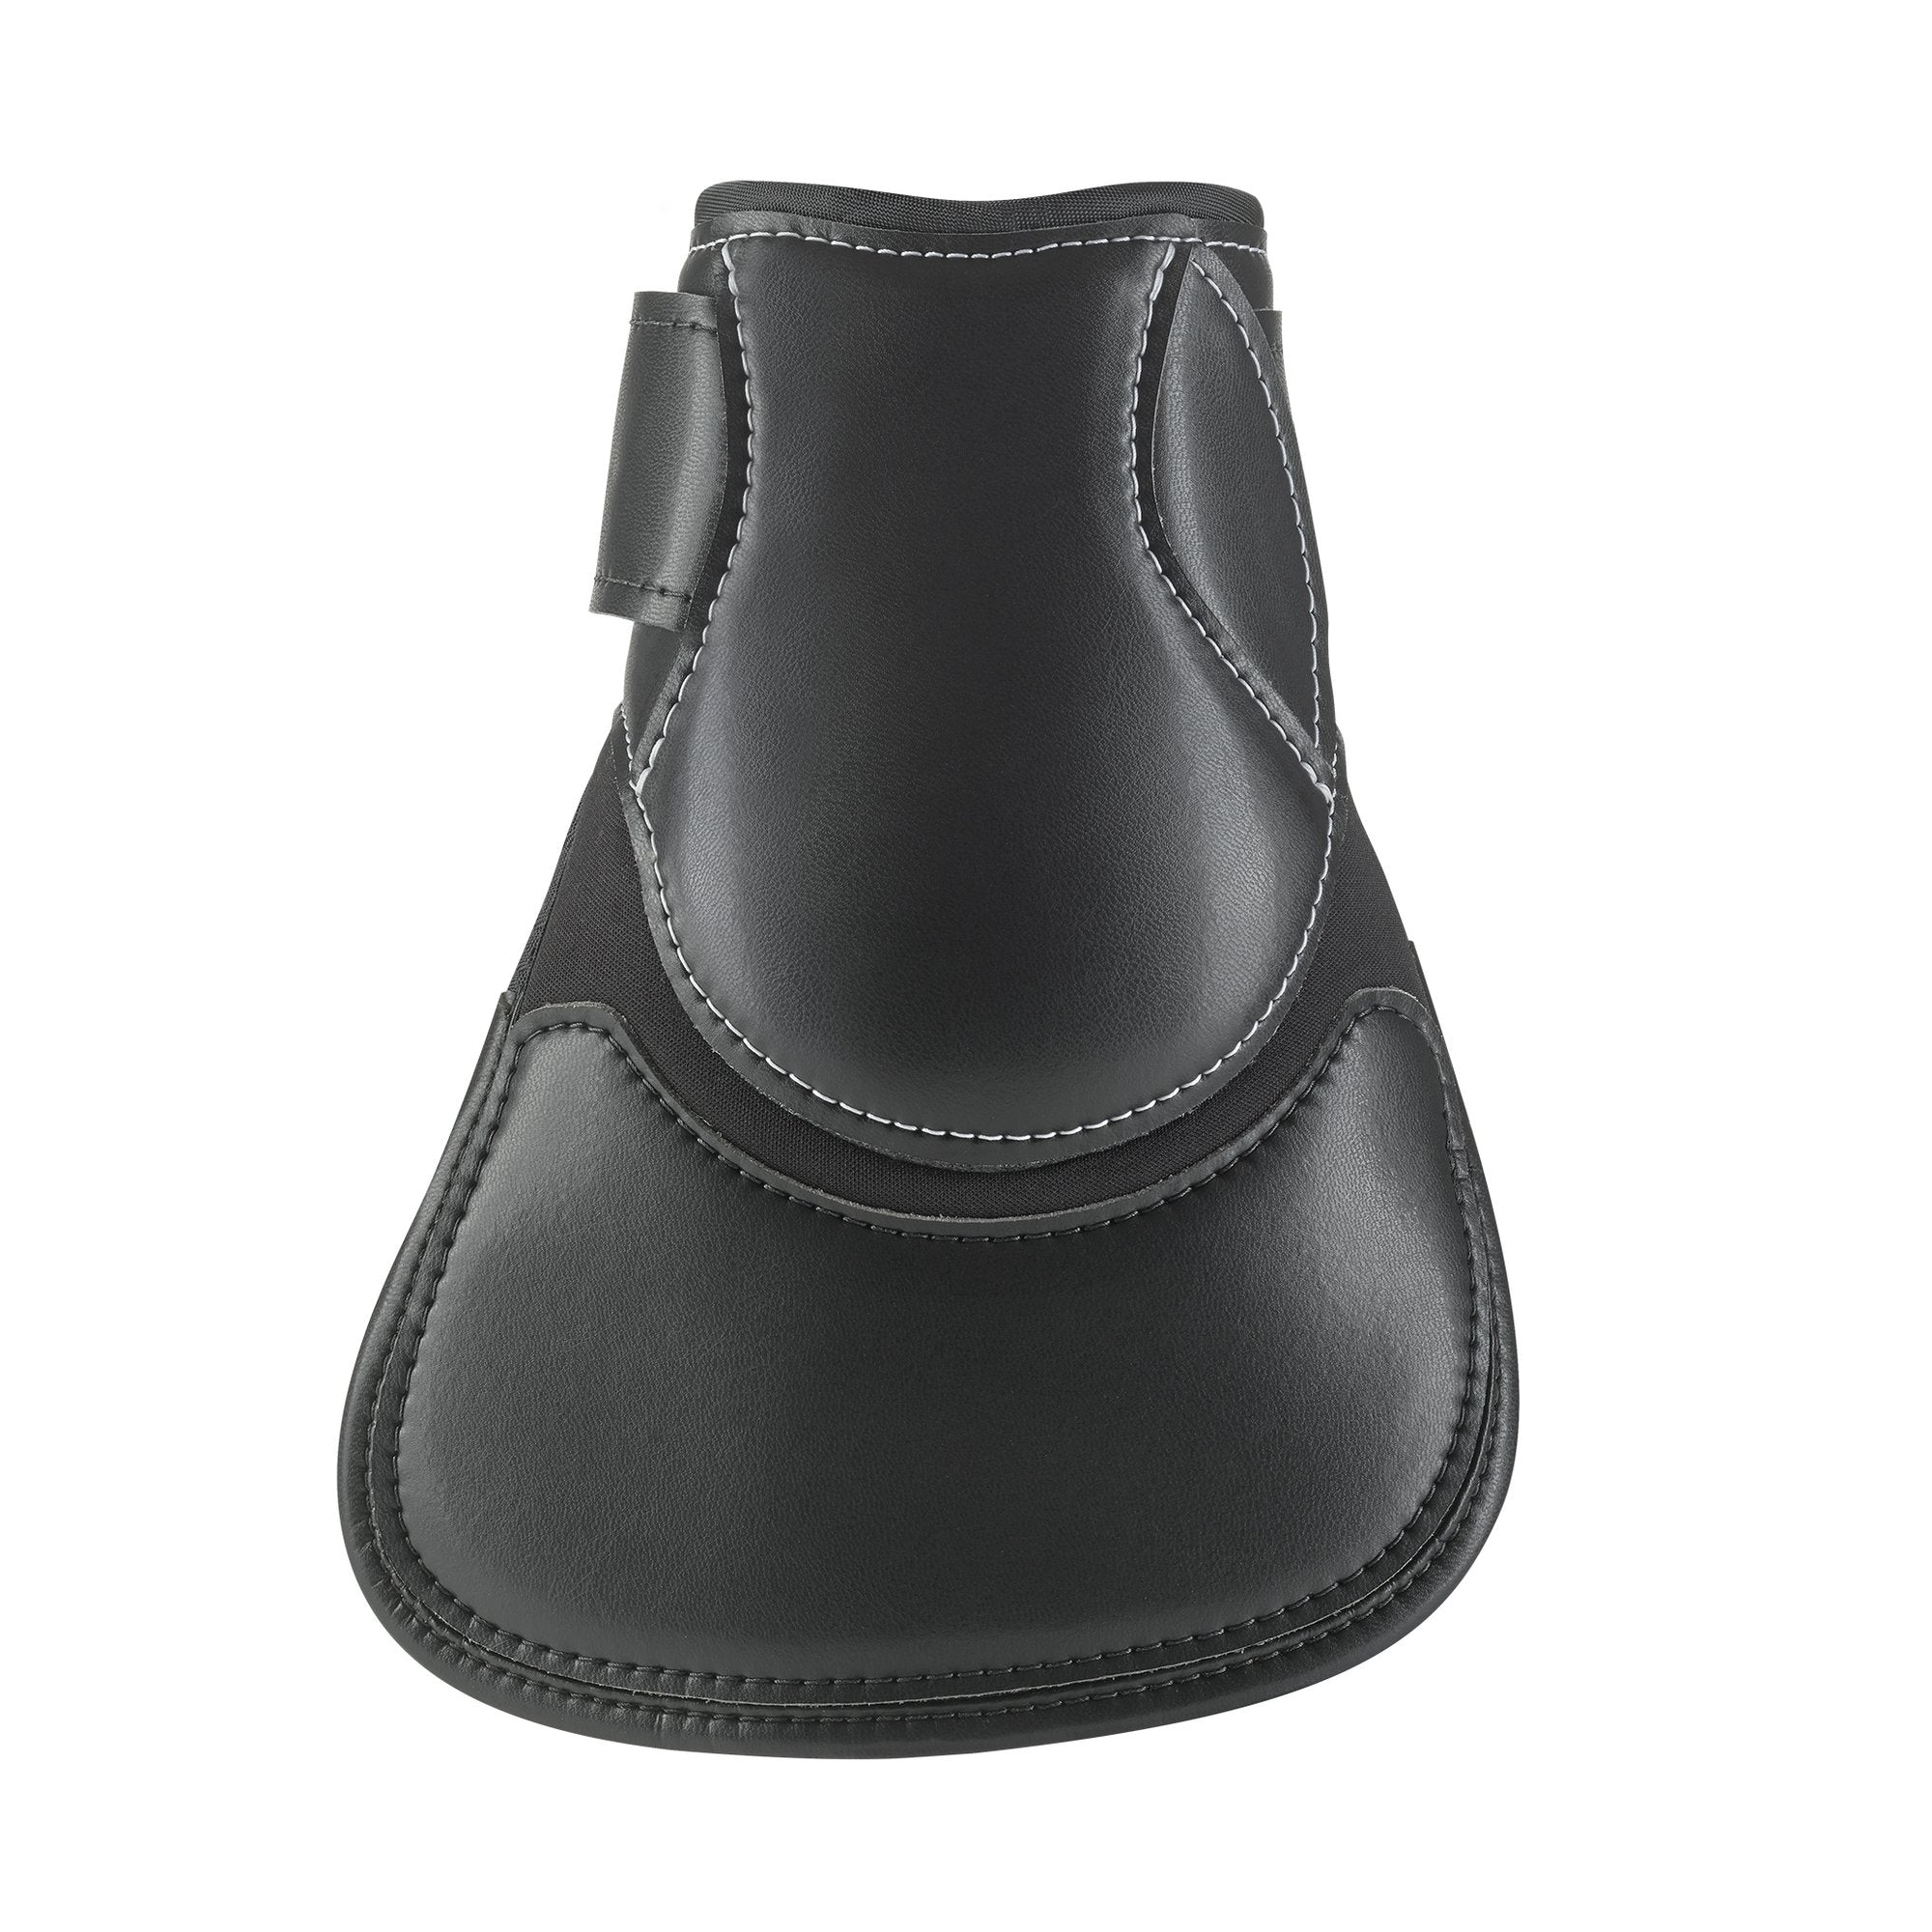 Equifit Young Horse Hind Boot w/ Extended Liner